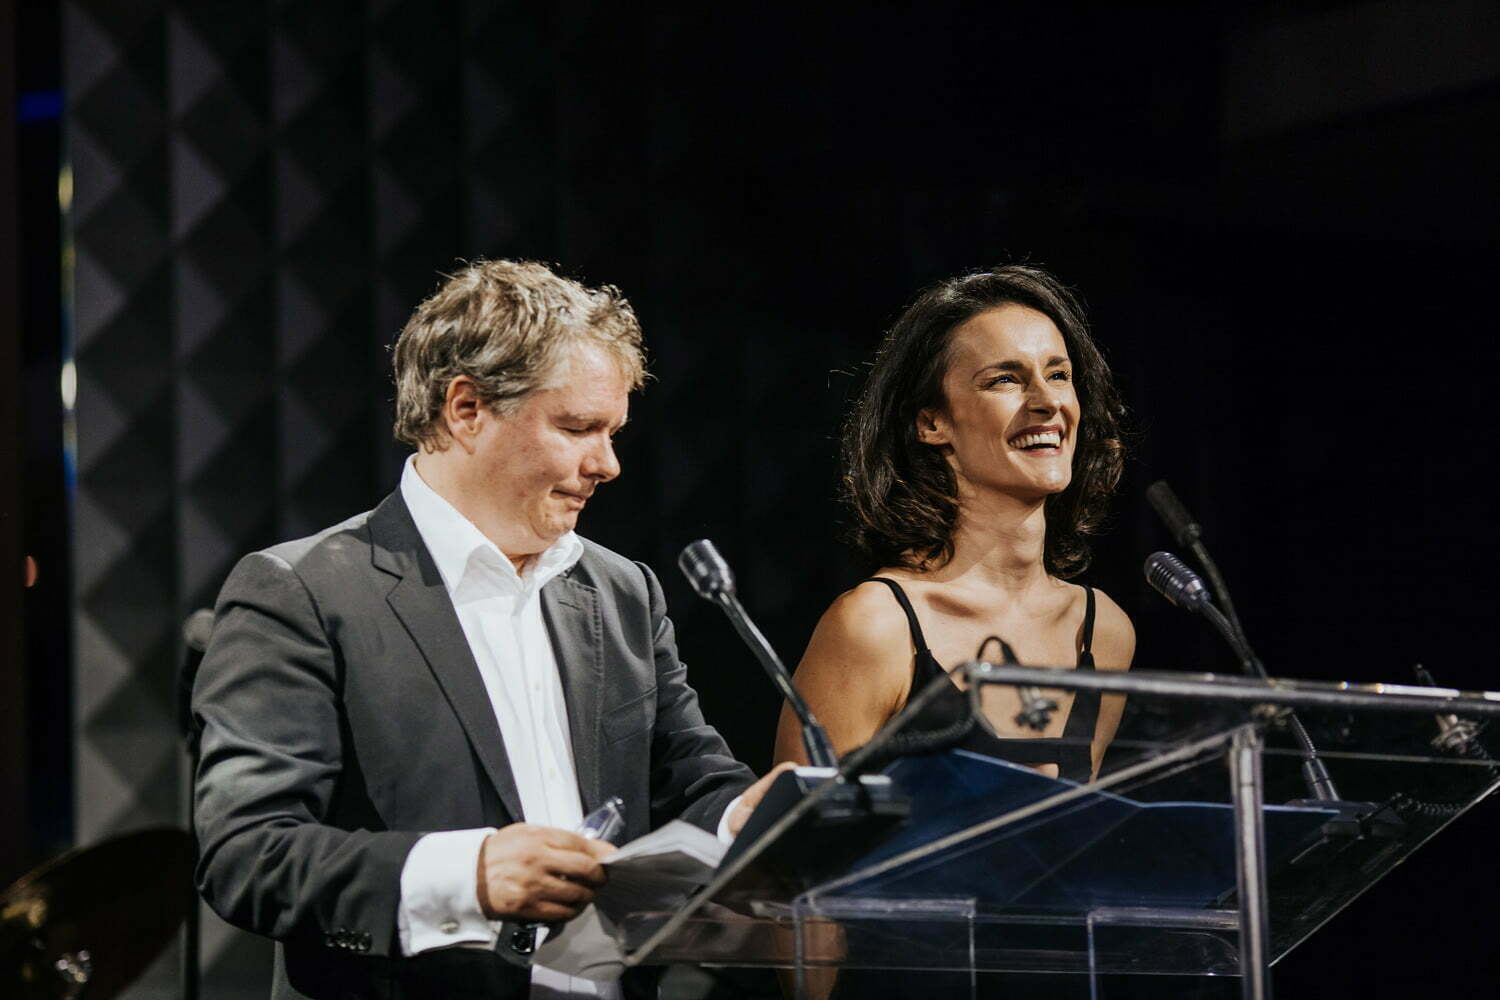 Montreal-actra-75years-anniversary-gala-award-event-photography-06